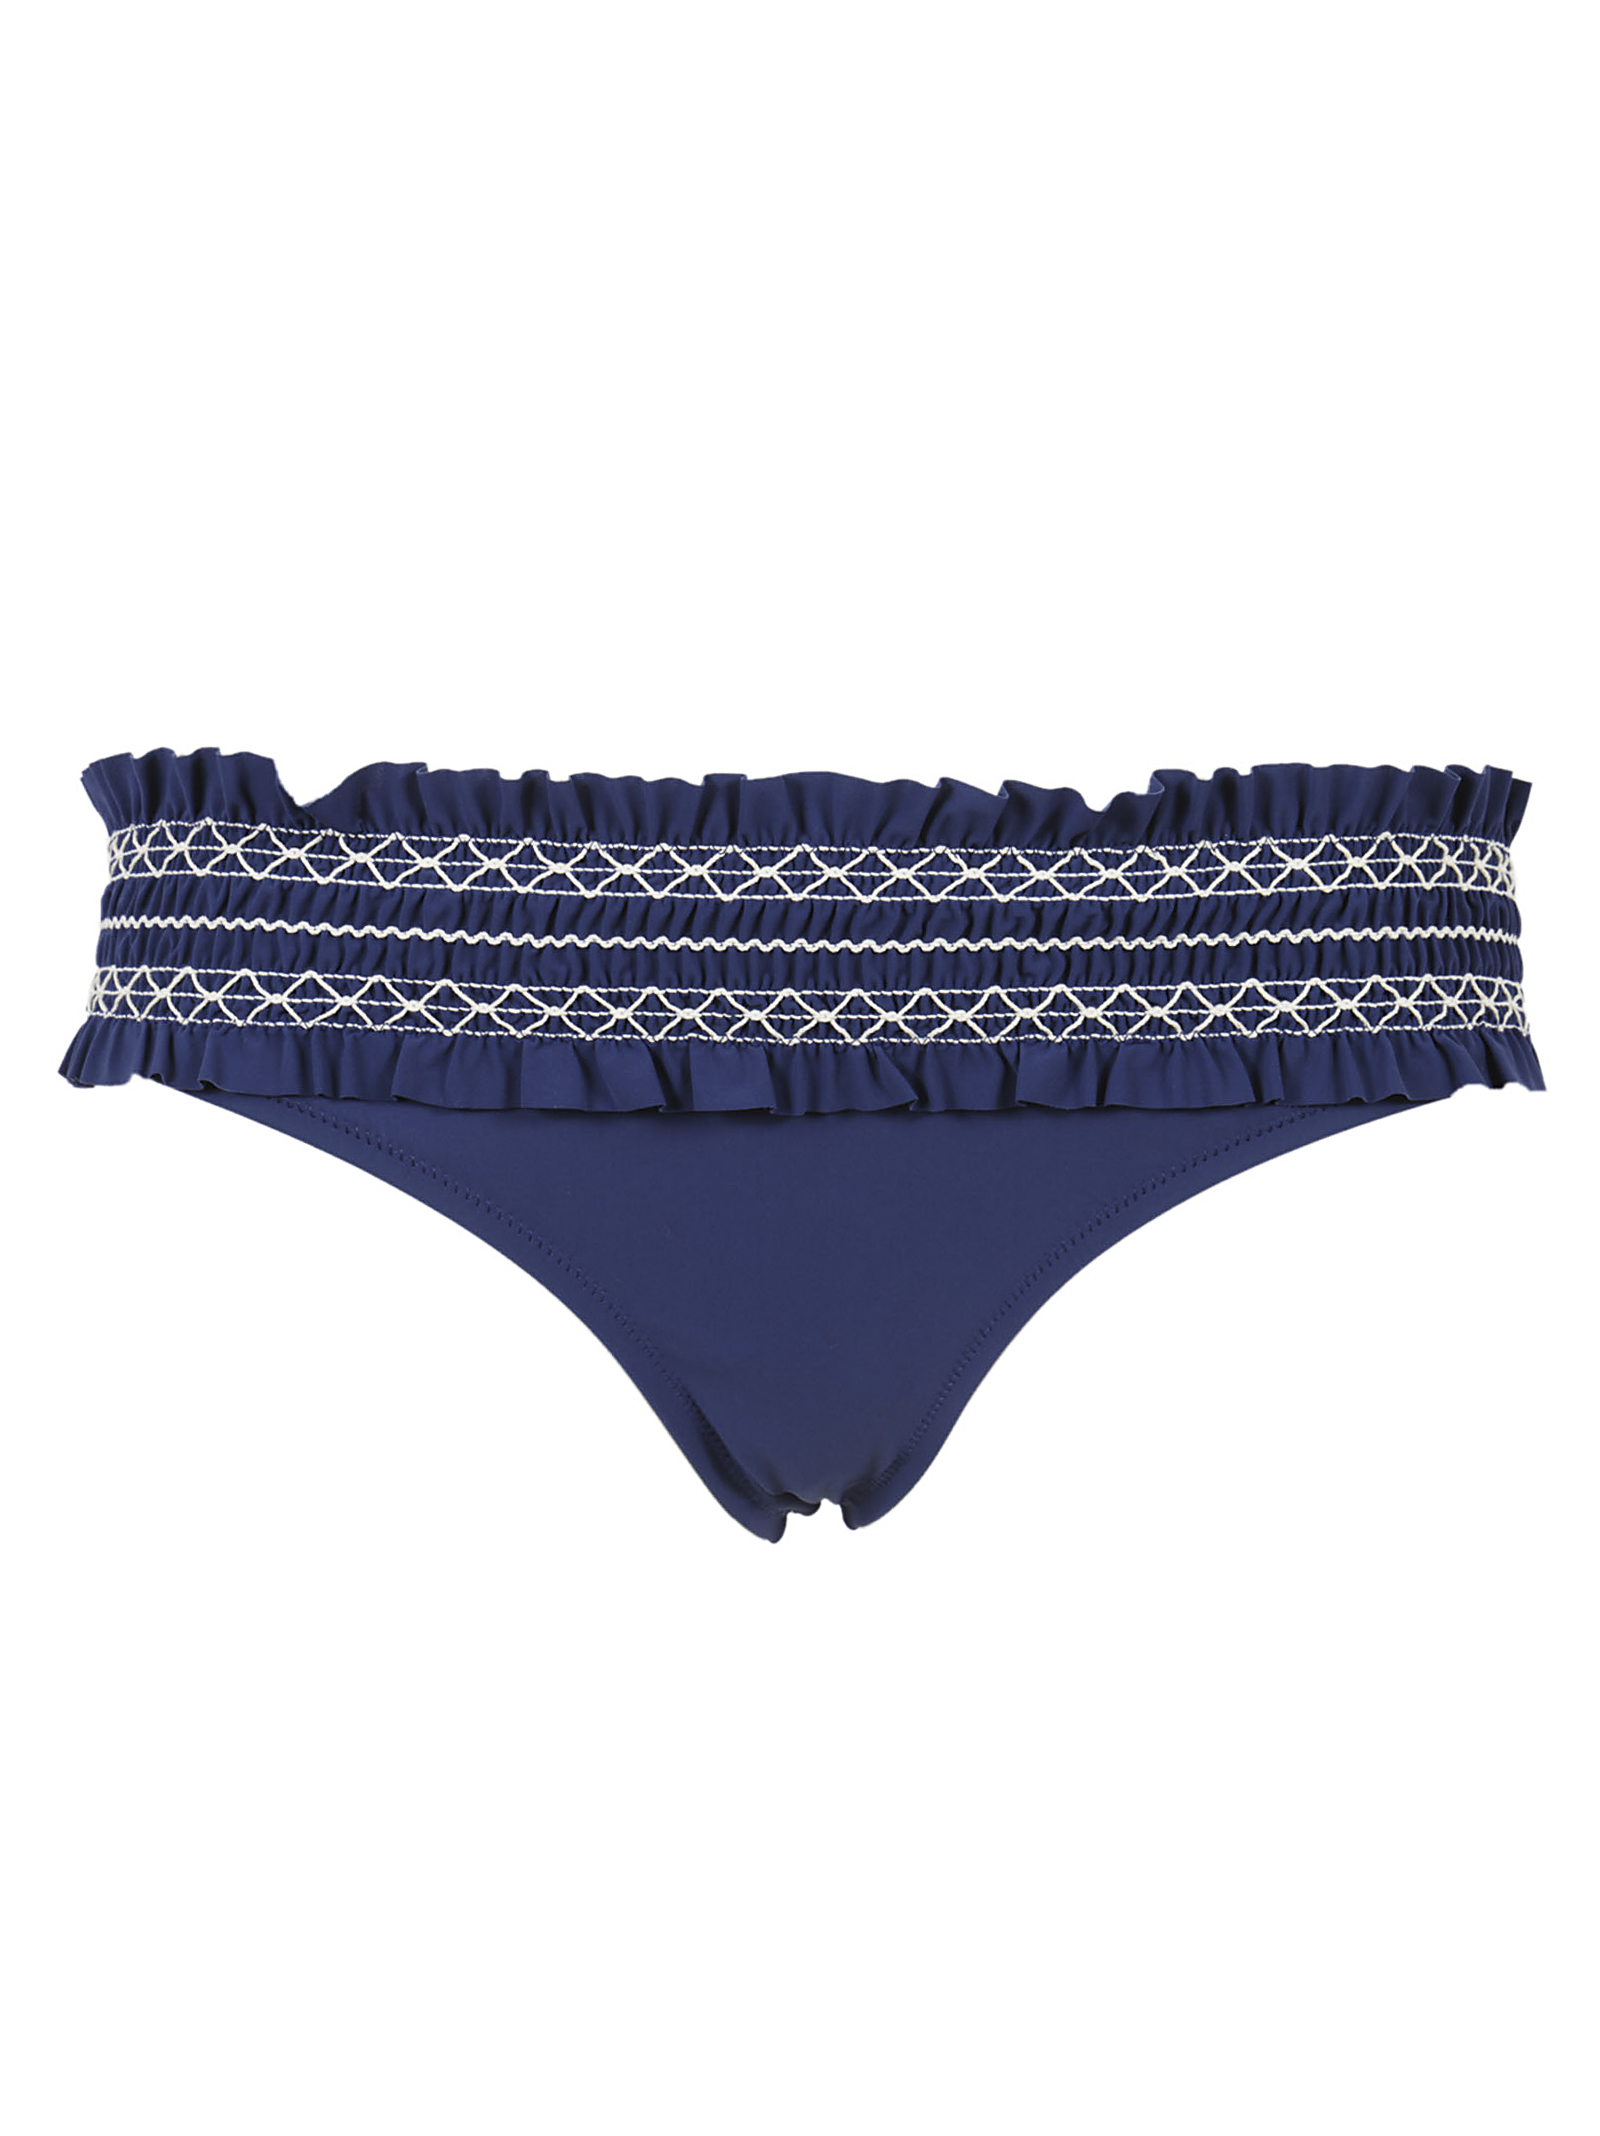 Tory Burch Blue ruffled bikini bottoms